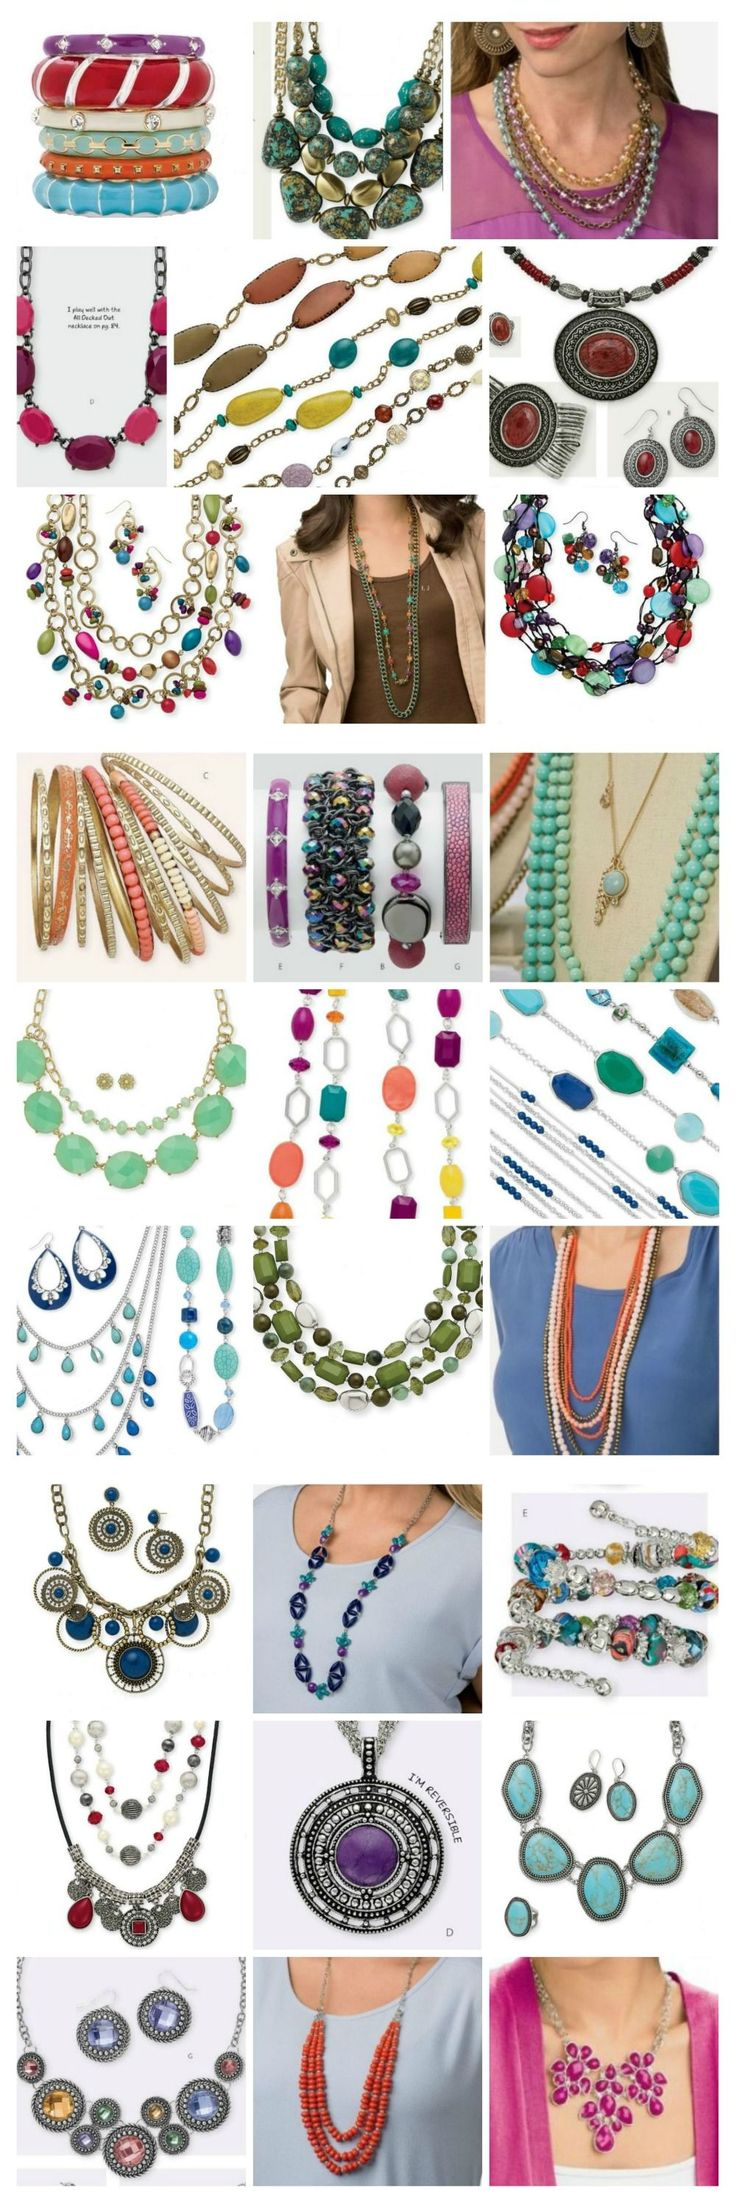 Oh, the colors! Premier Designs jewelry! Amyvanvleet.mypremierdesigns.com access code: BLING